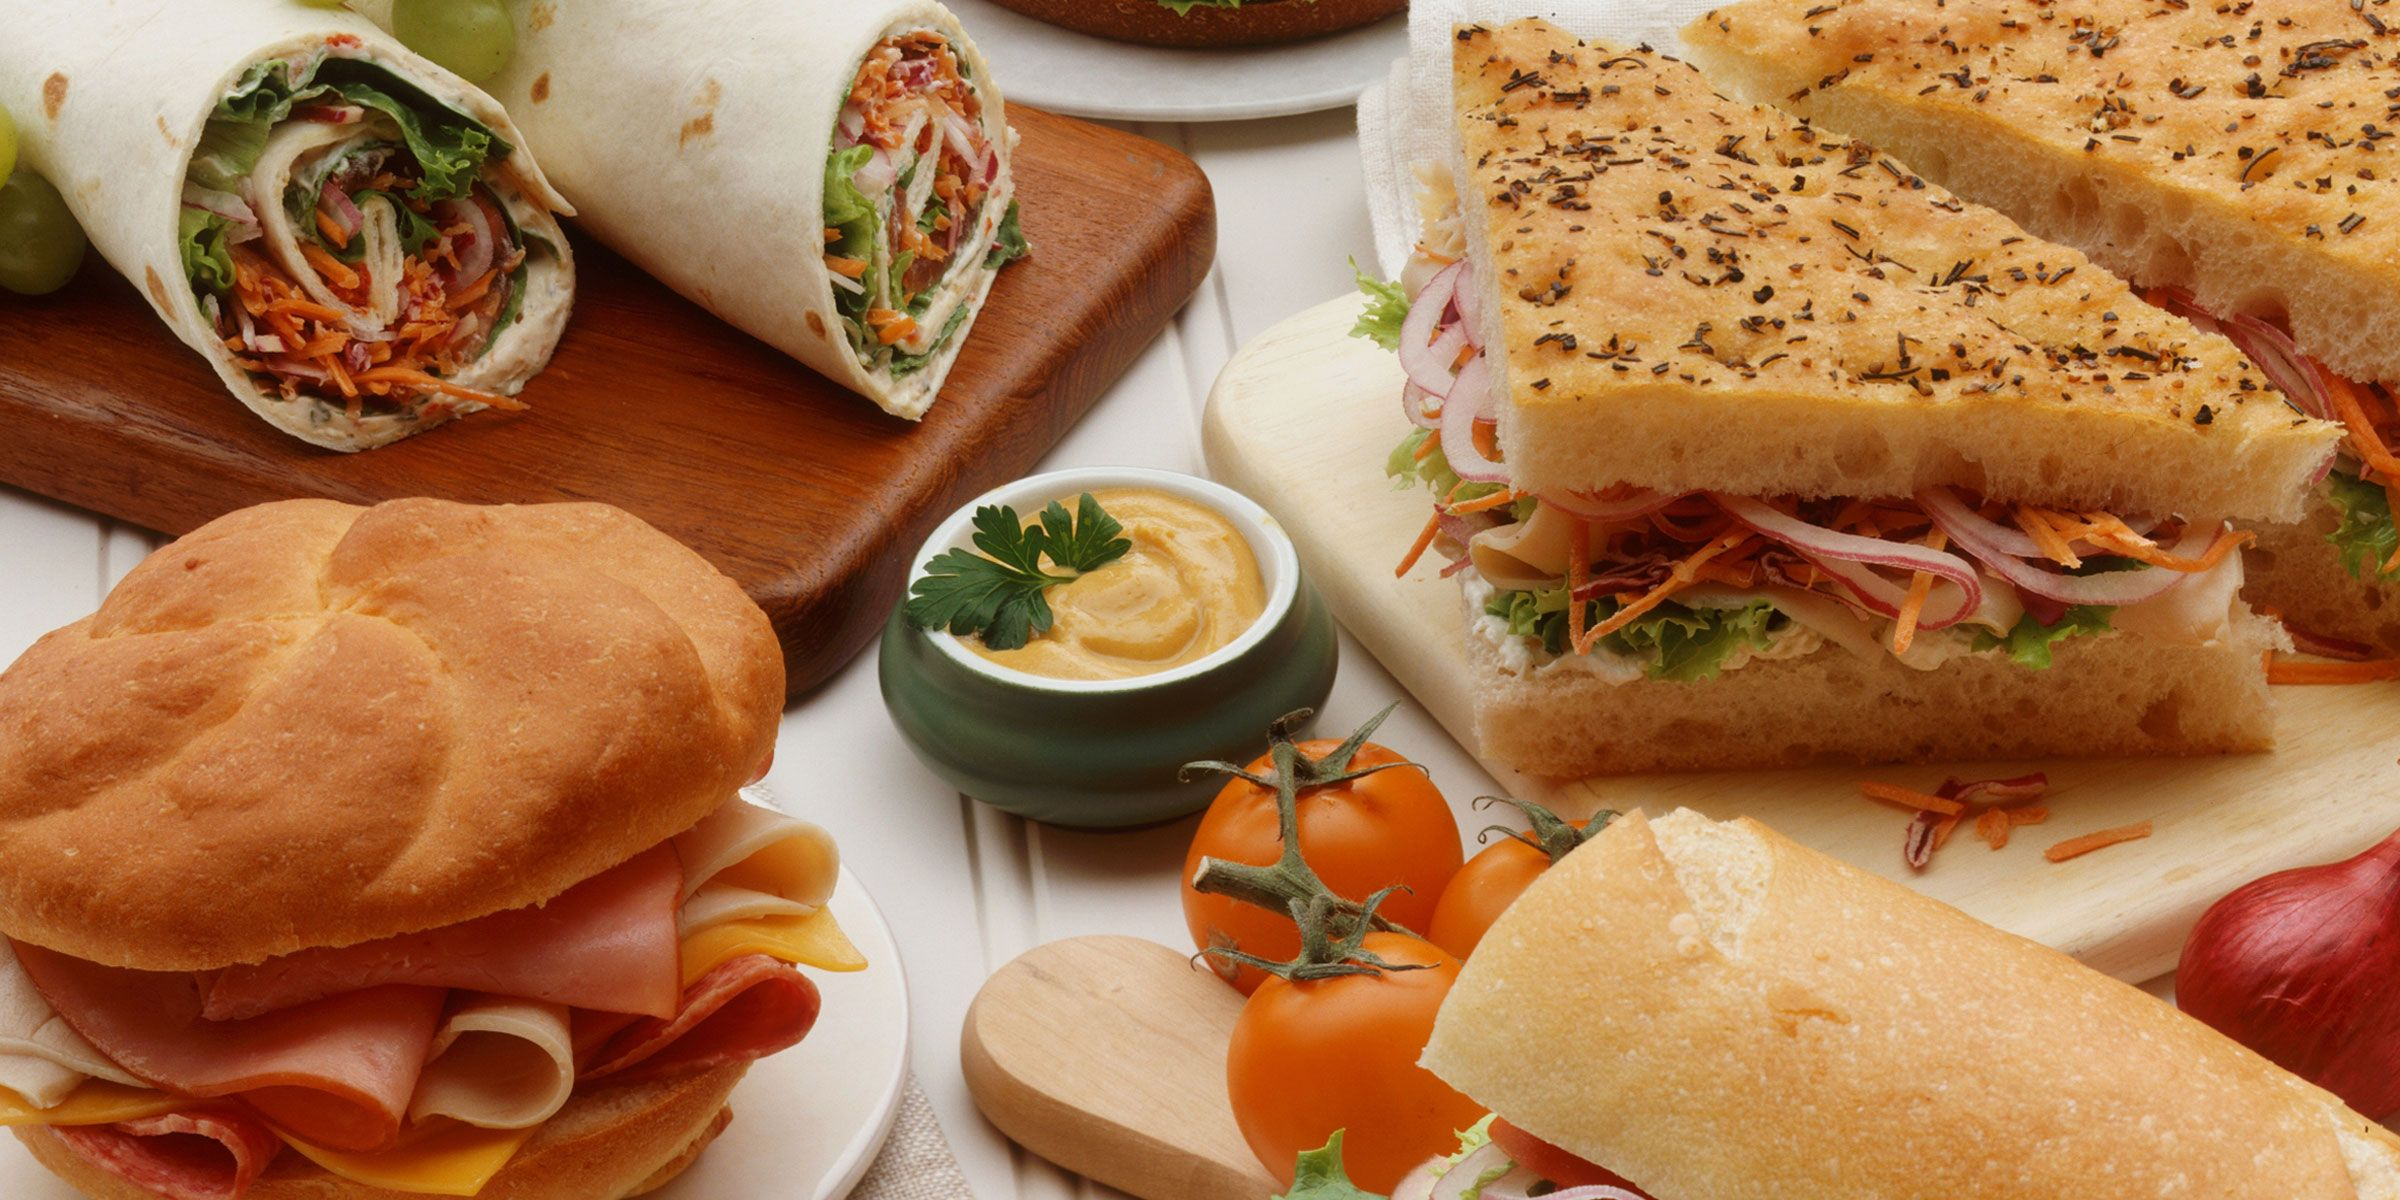 Photo of a variety of deli sandwiches